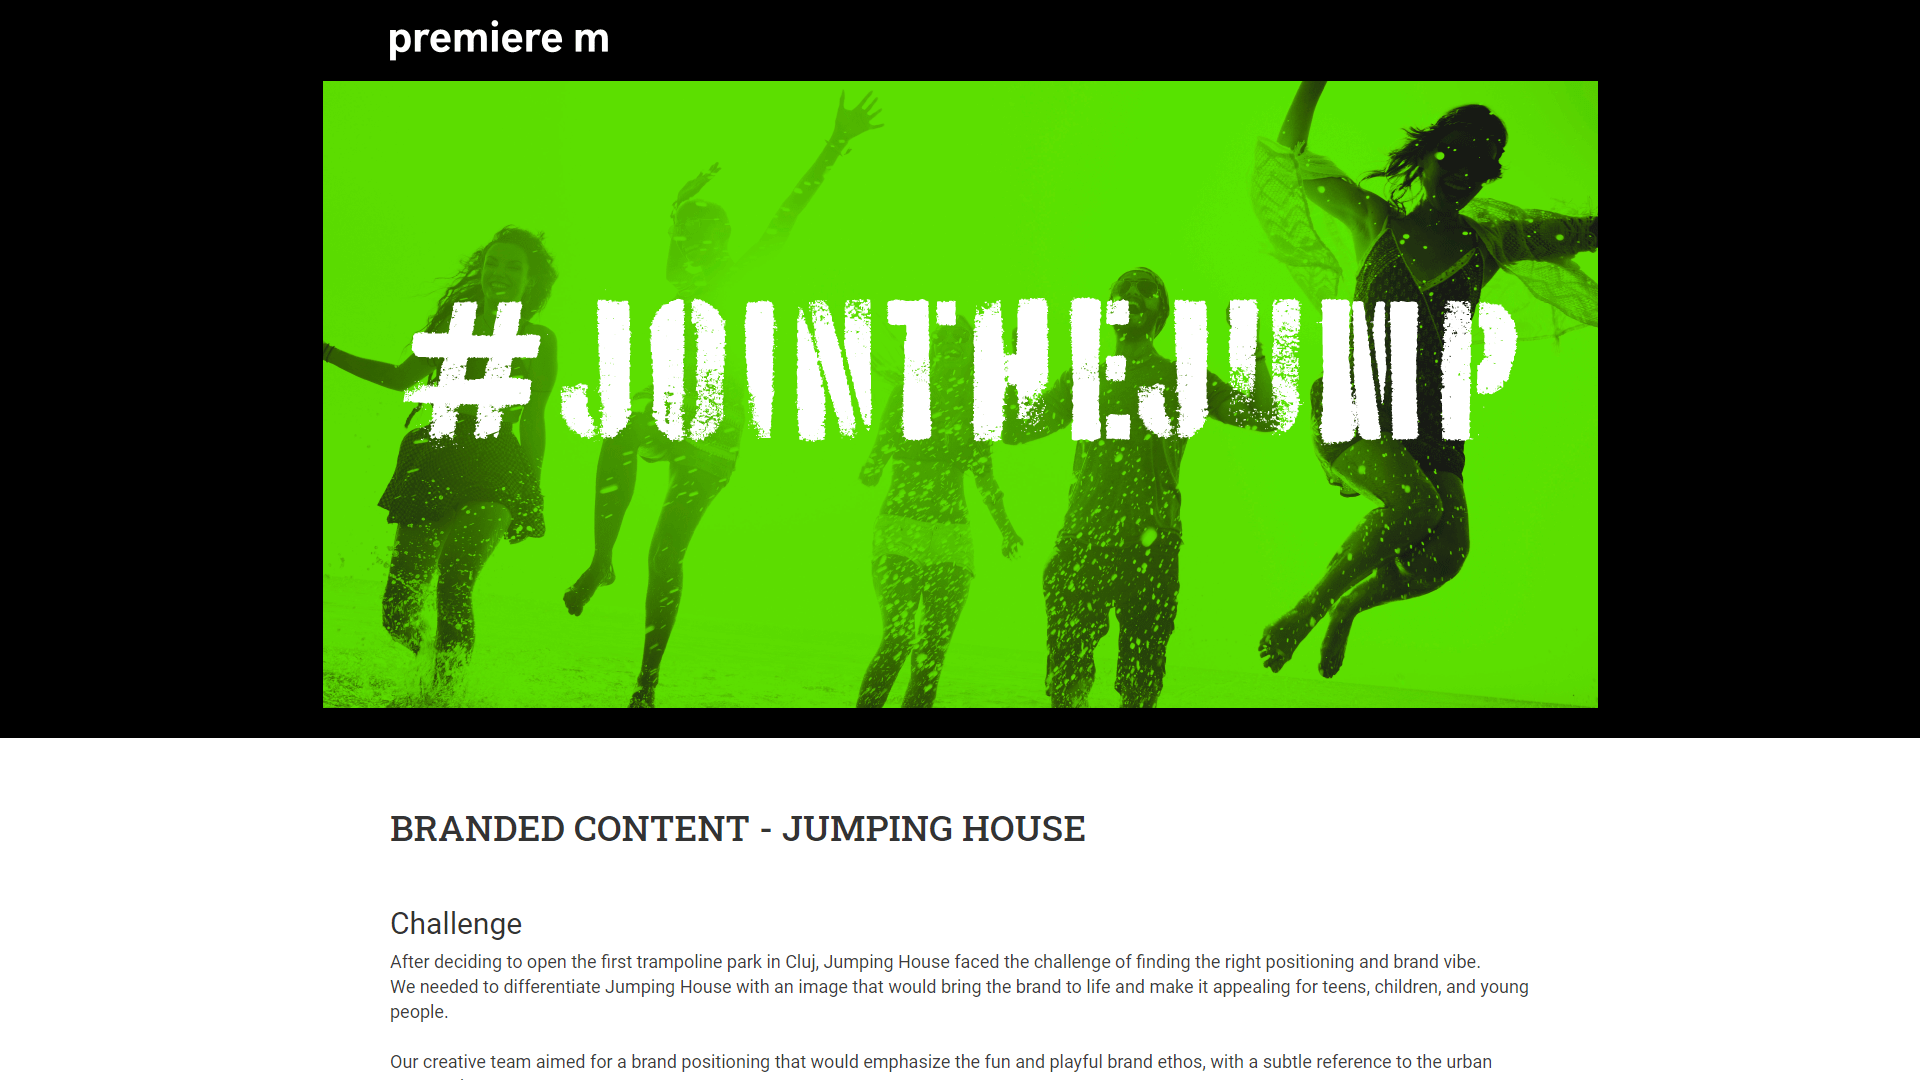 BRANDED CONTENT – JUMPING HOUSE